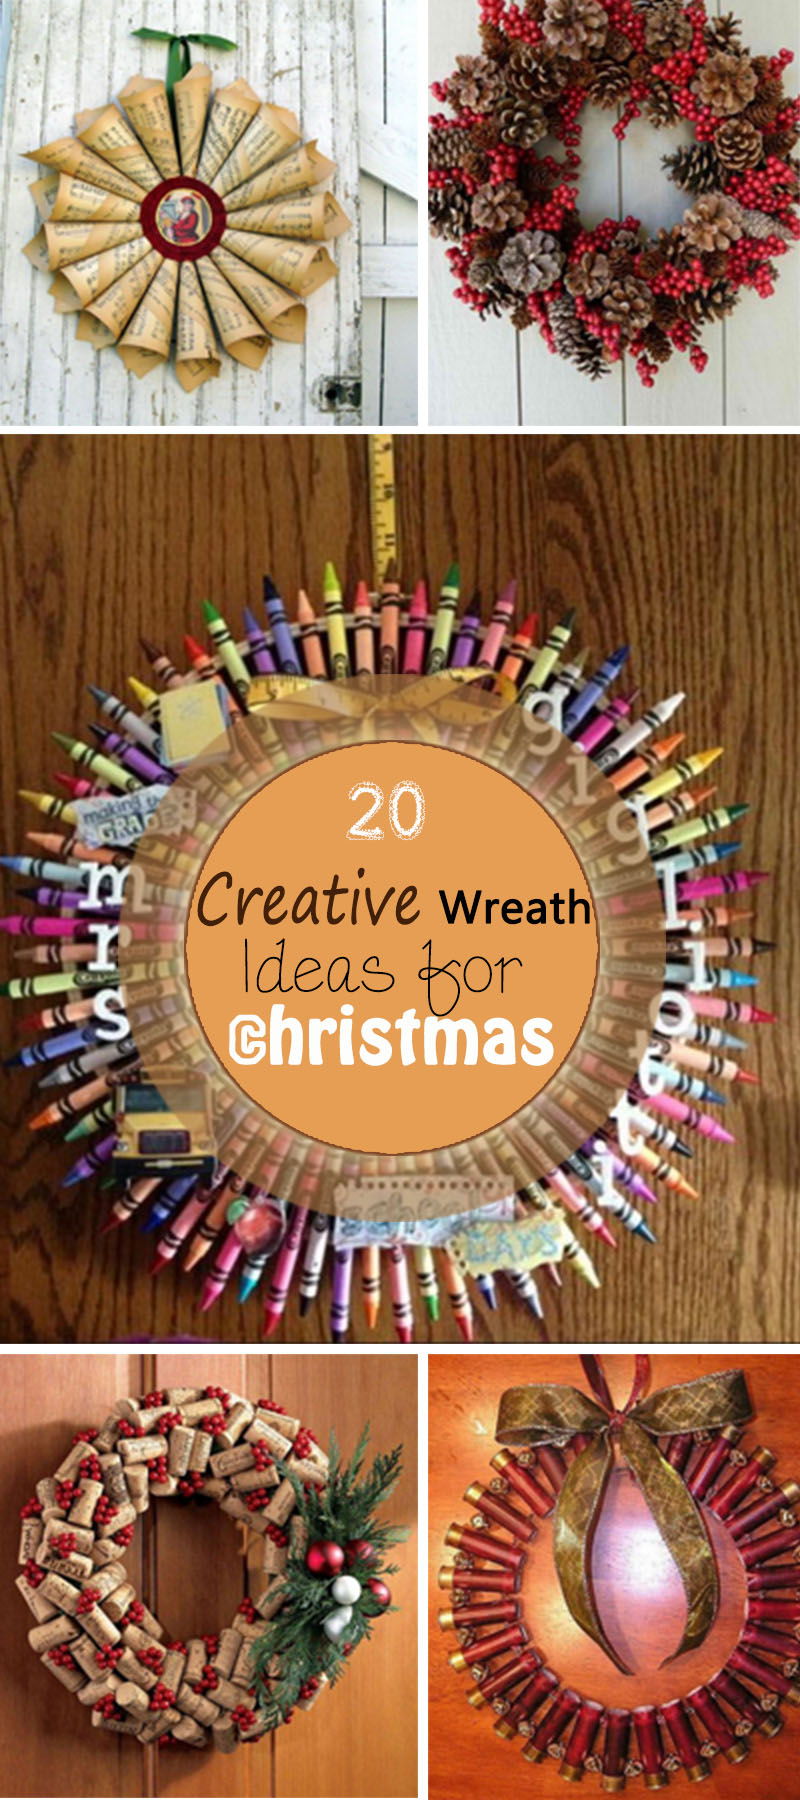 Lots of Creative Wreath Ideas for Christmas!